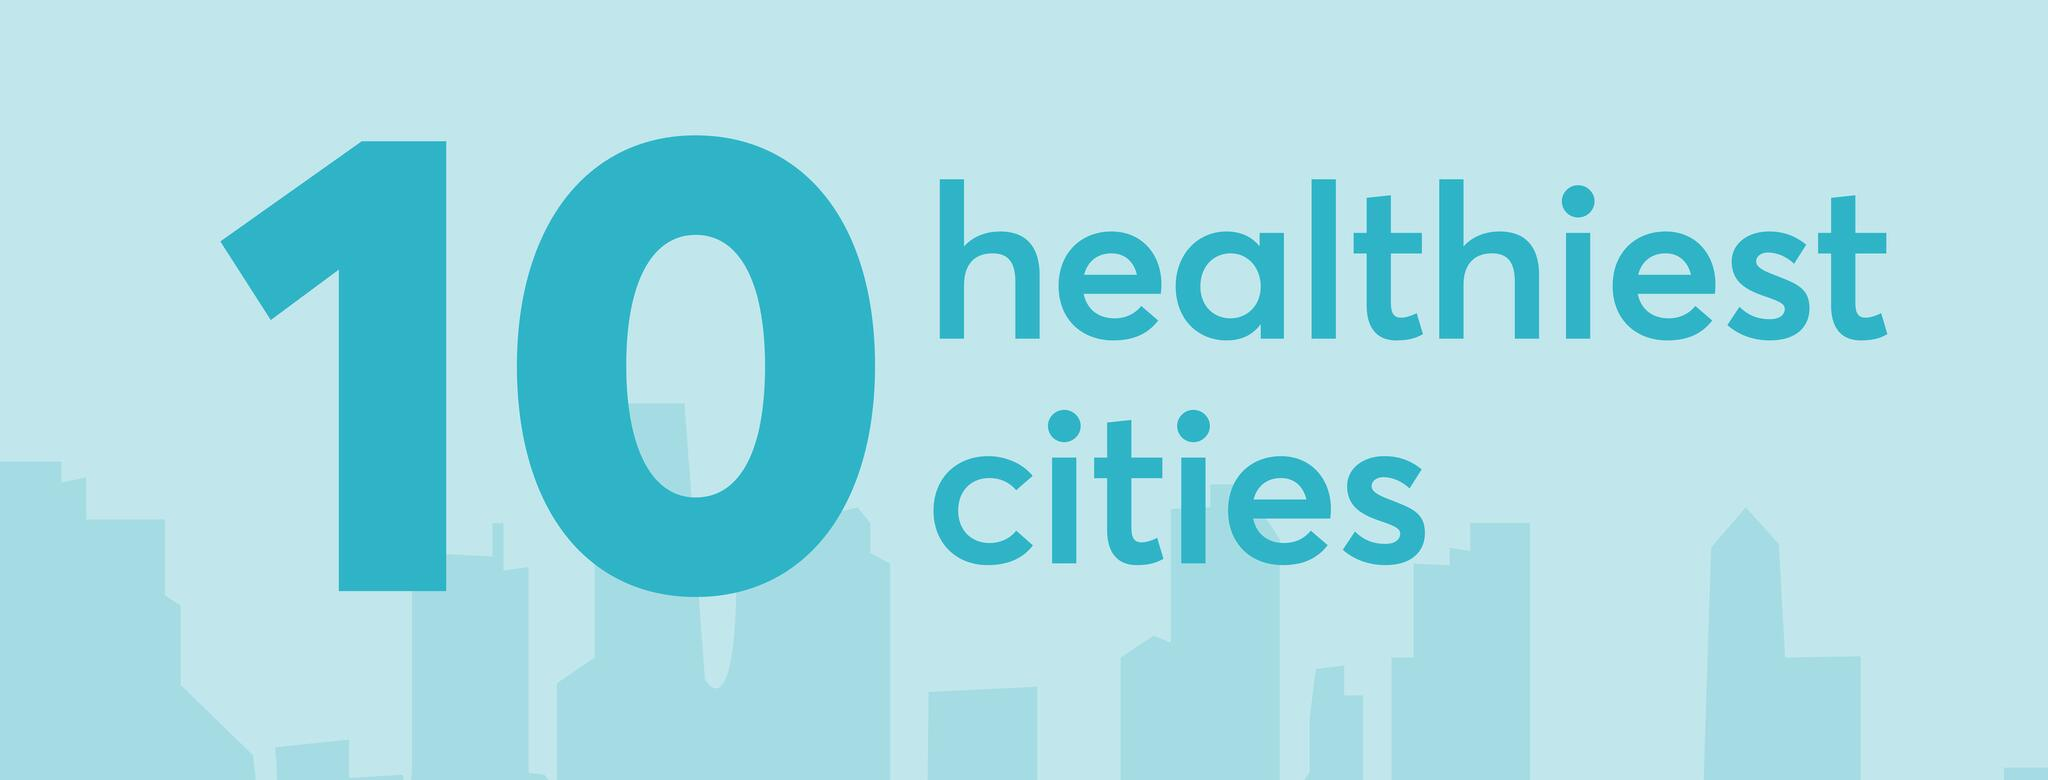 10 Healthiest Cities